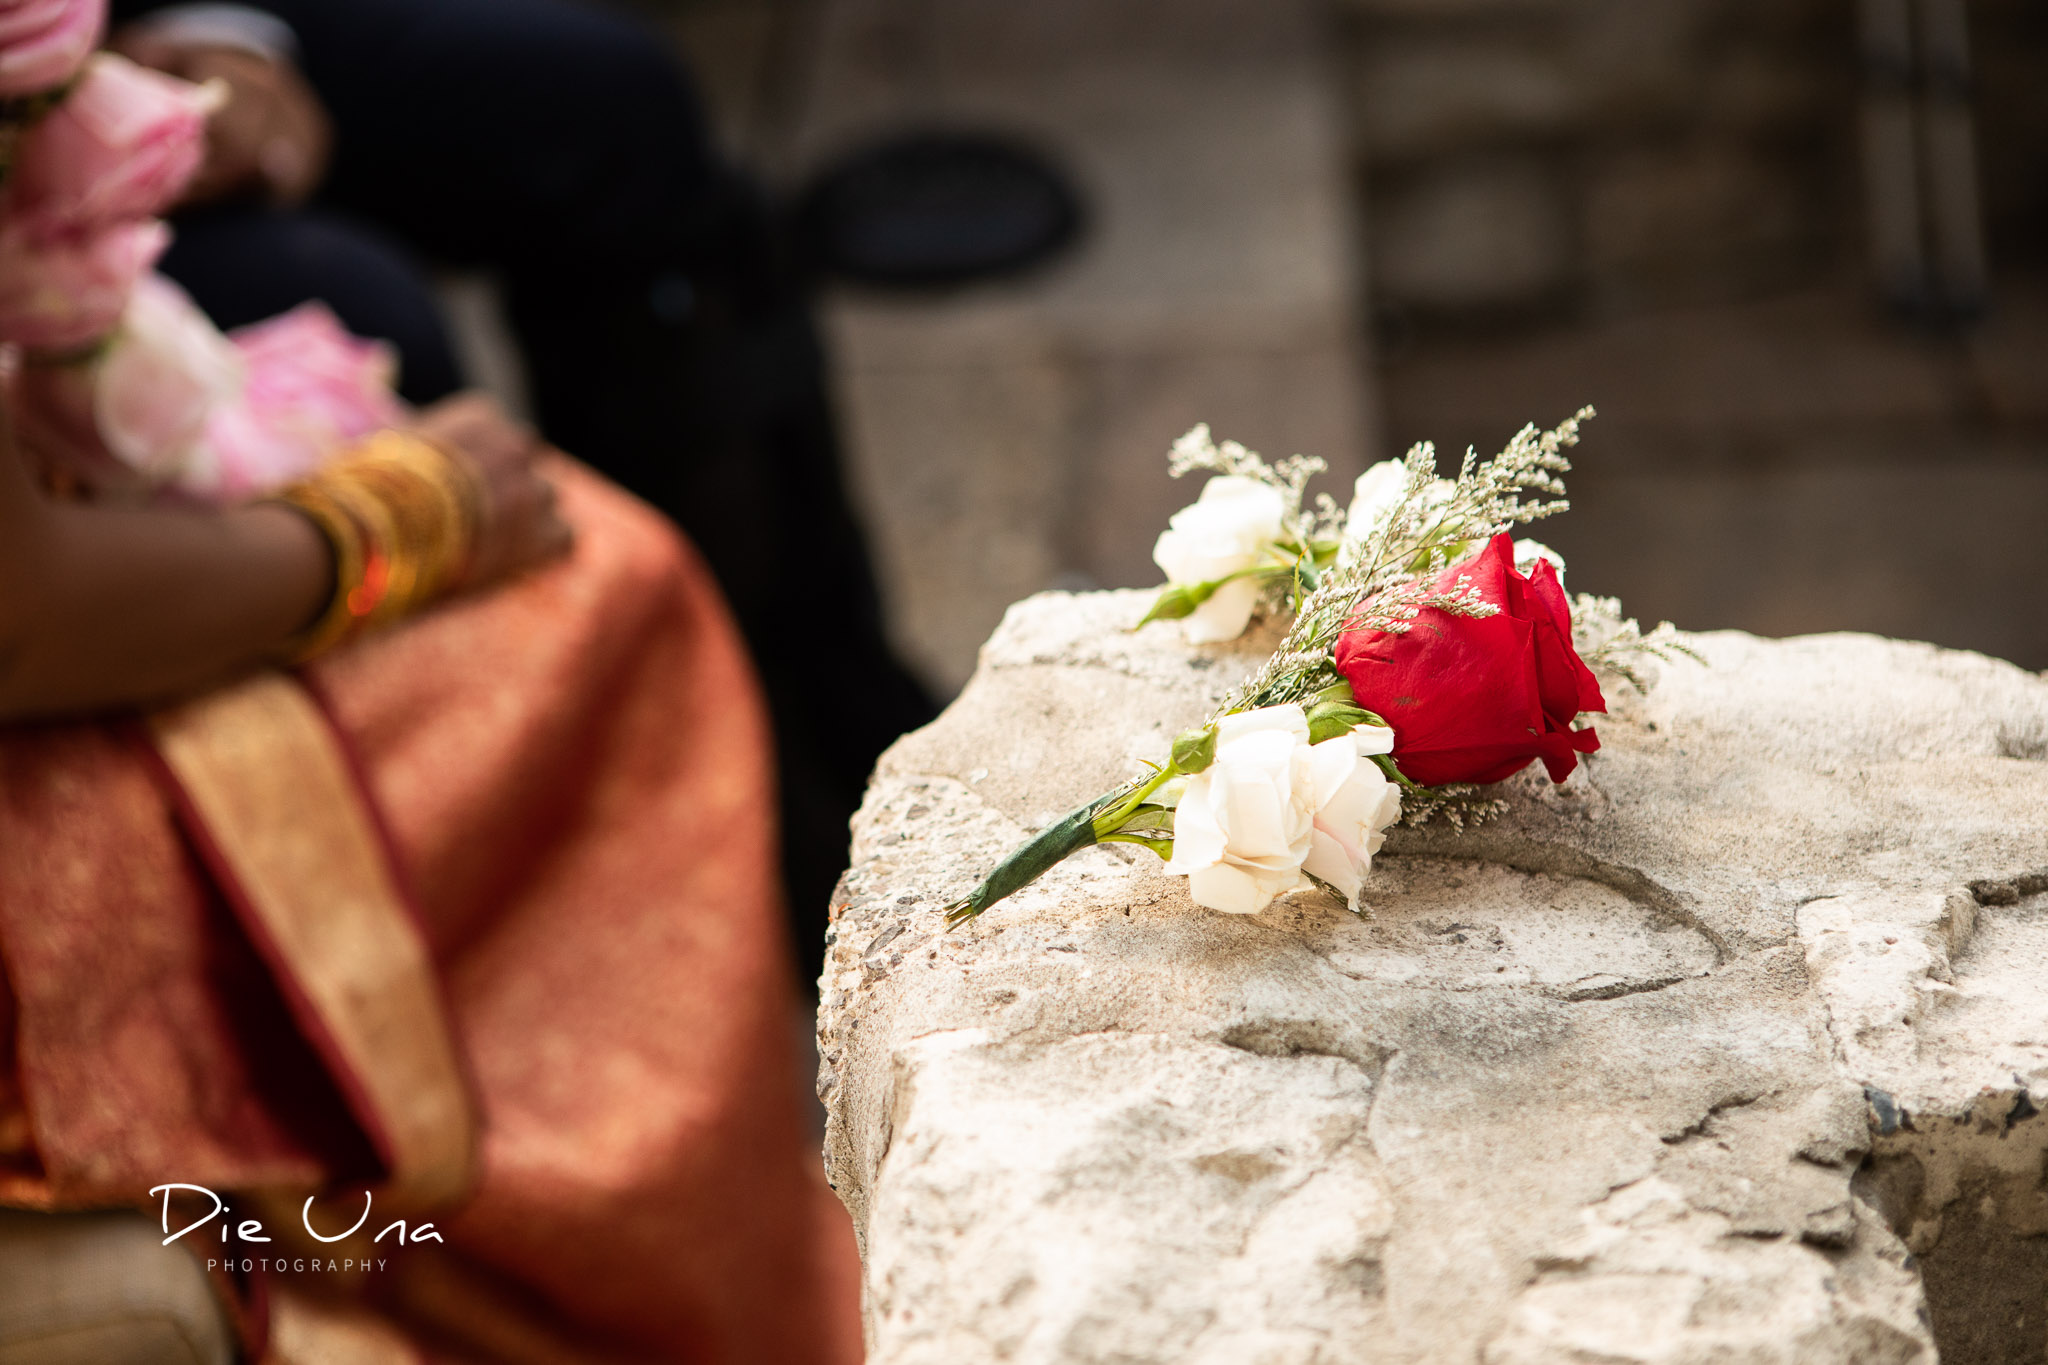 small hand held wedding bouquet resting on rock ledge during wedding ceremony.jpg